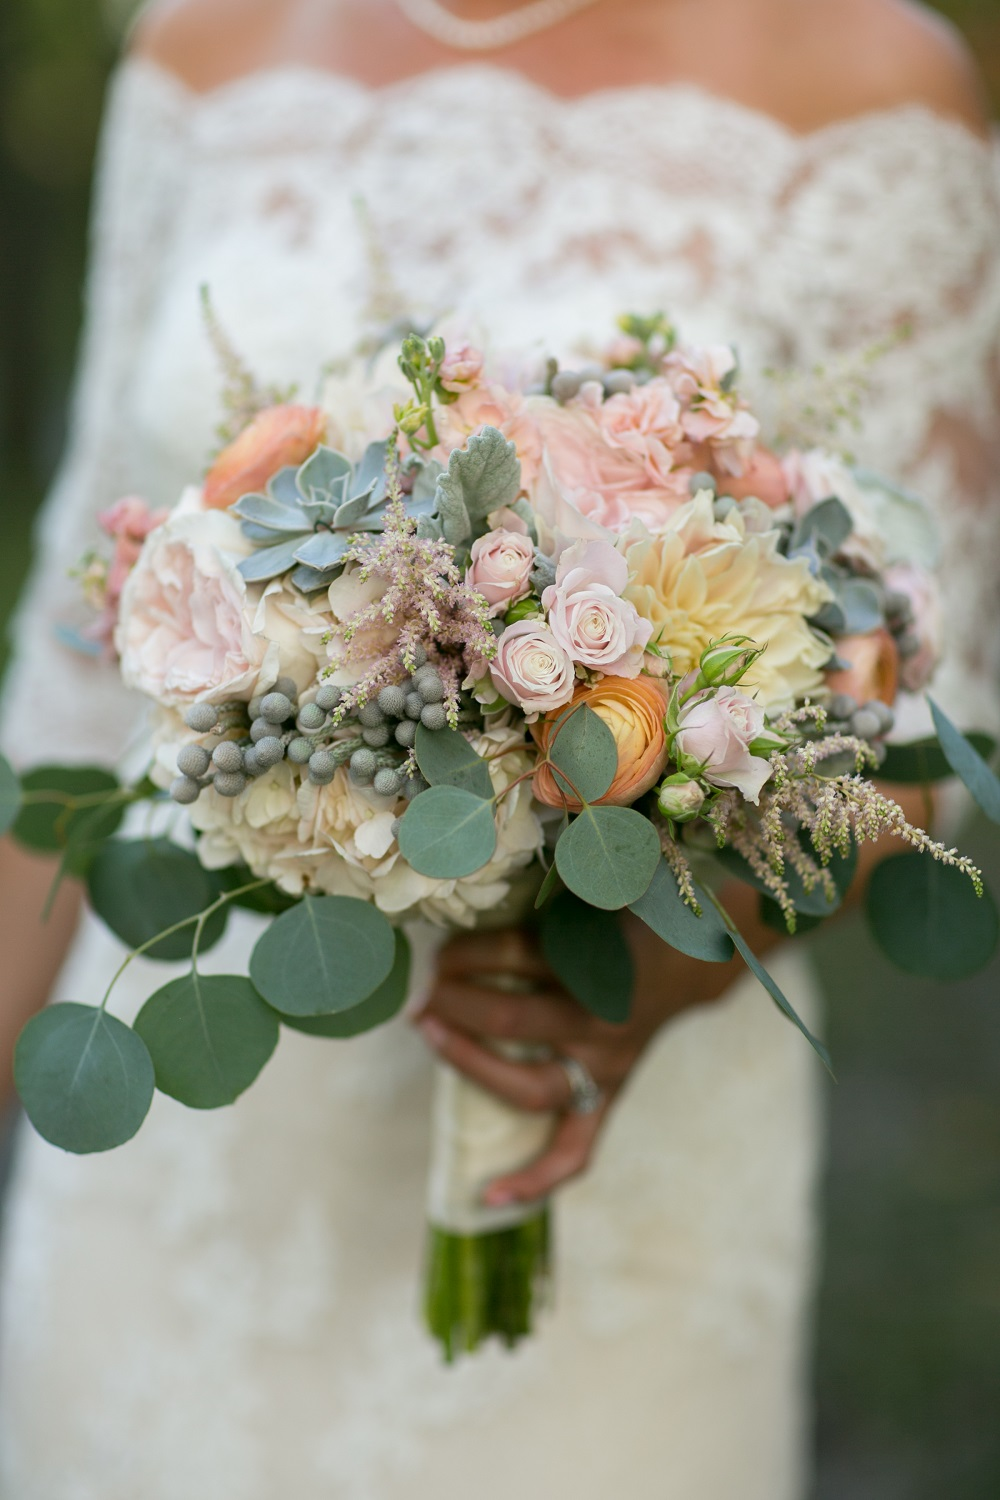 Minneapolis Rose Wedding Florist Succulent Bouquet Dahlia Eucalyptus Blush Flower Shop Bride Bridal Pink Rose Astilbe English Rose Dusty Miller Garden Rose White Dahlia Brunia Succulent Hand Tied Bouquet Plate Dahlia English